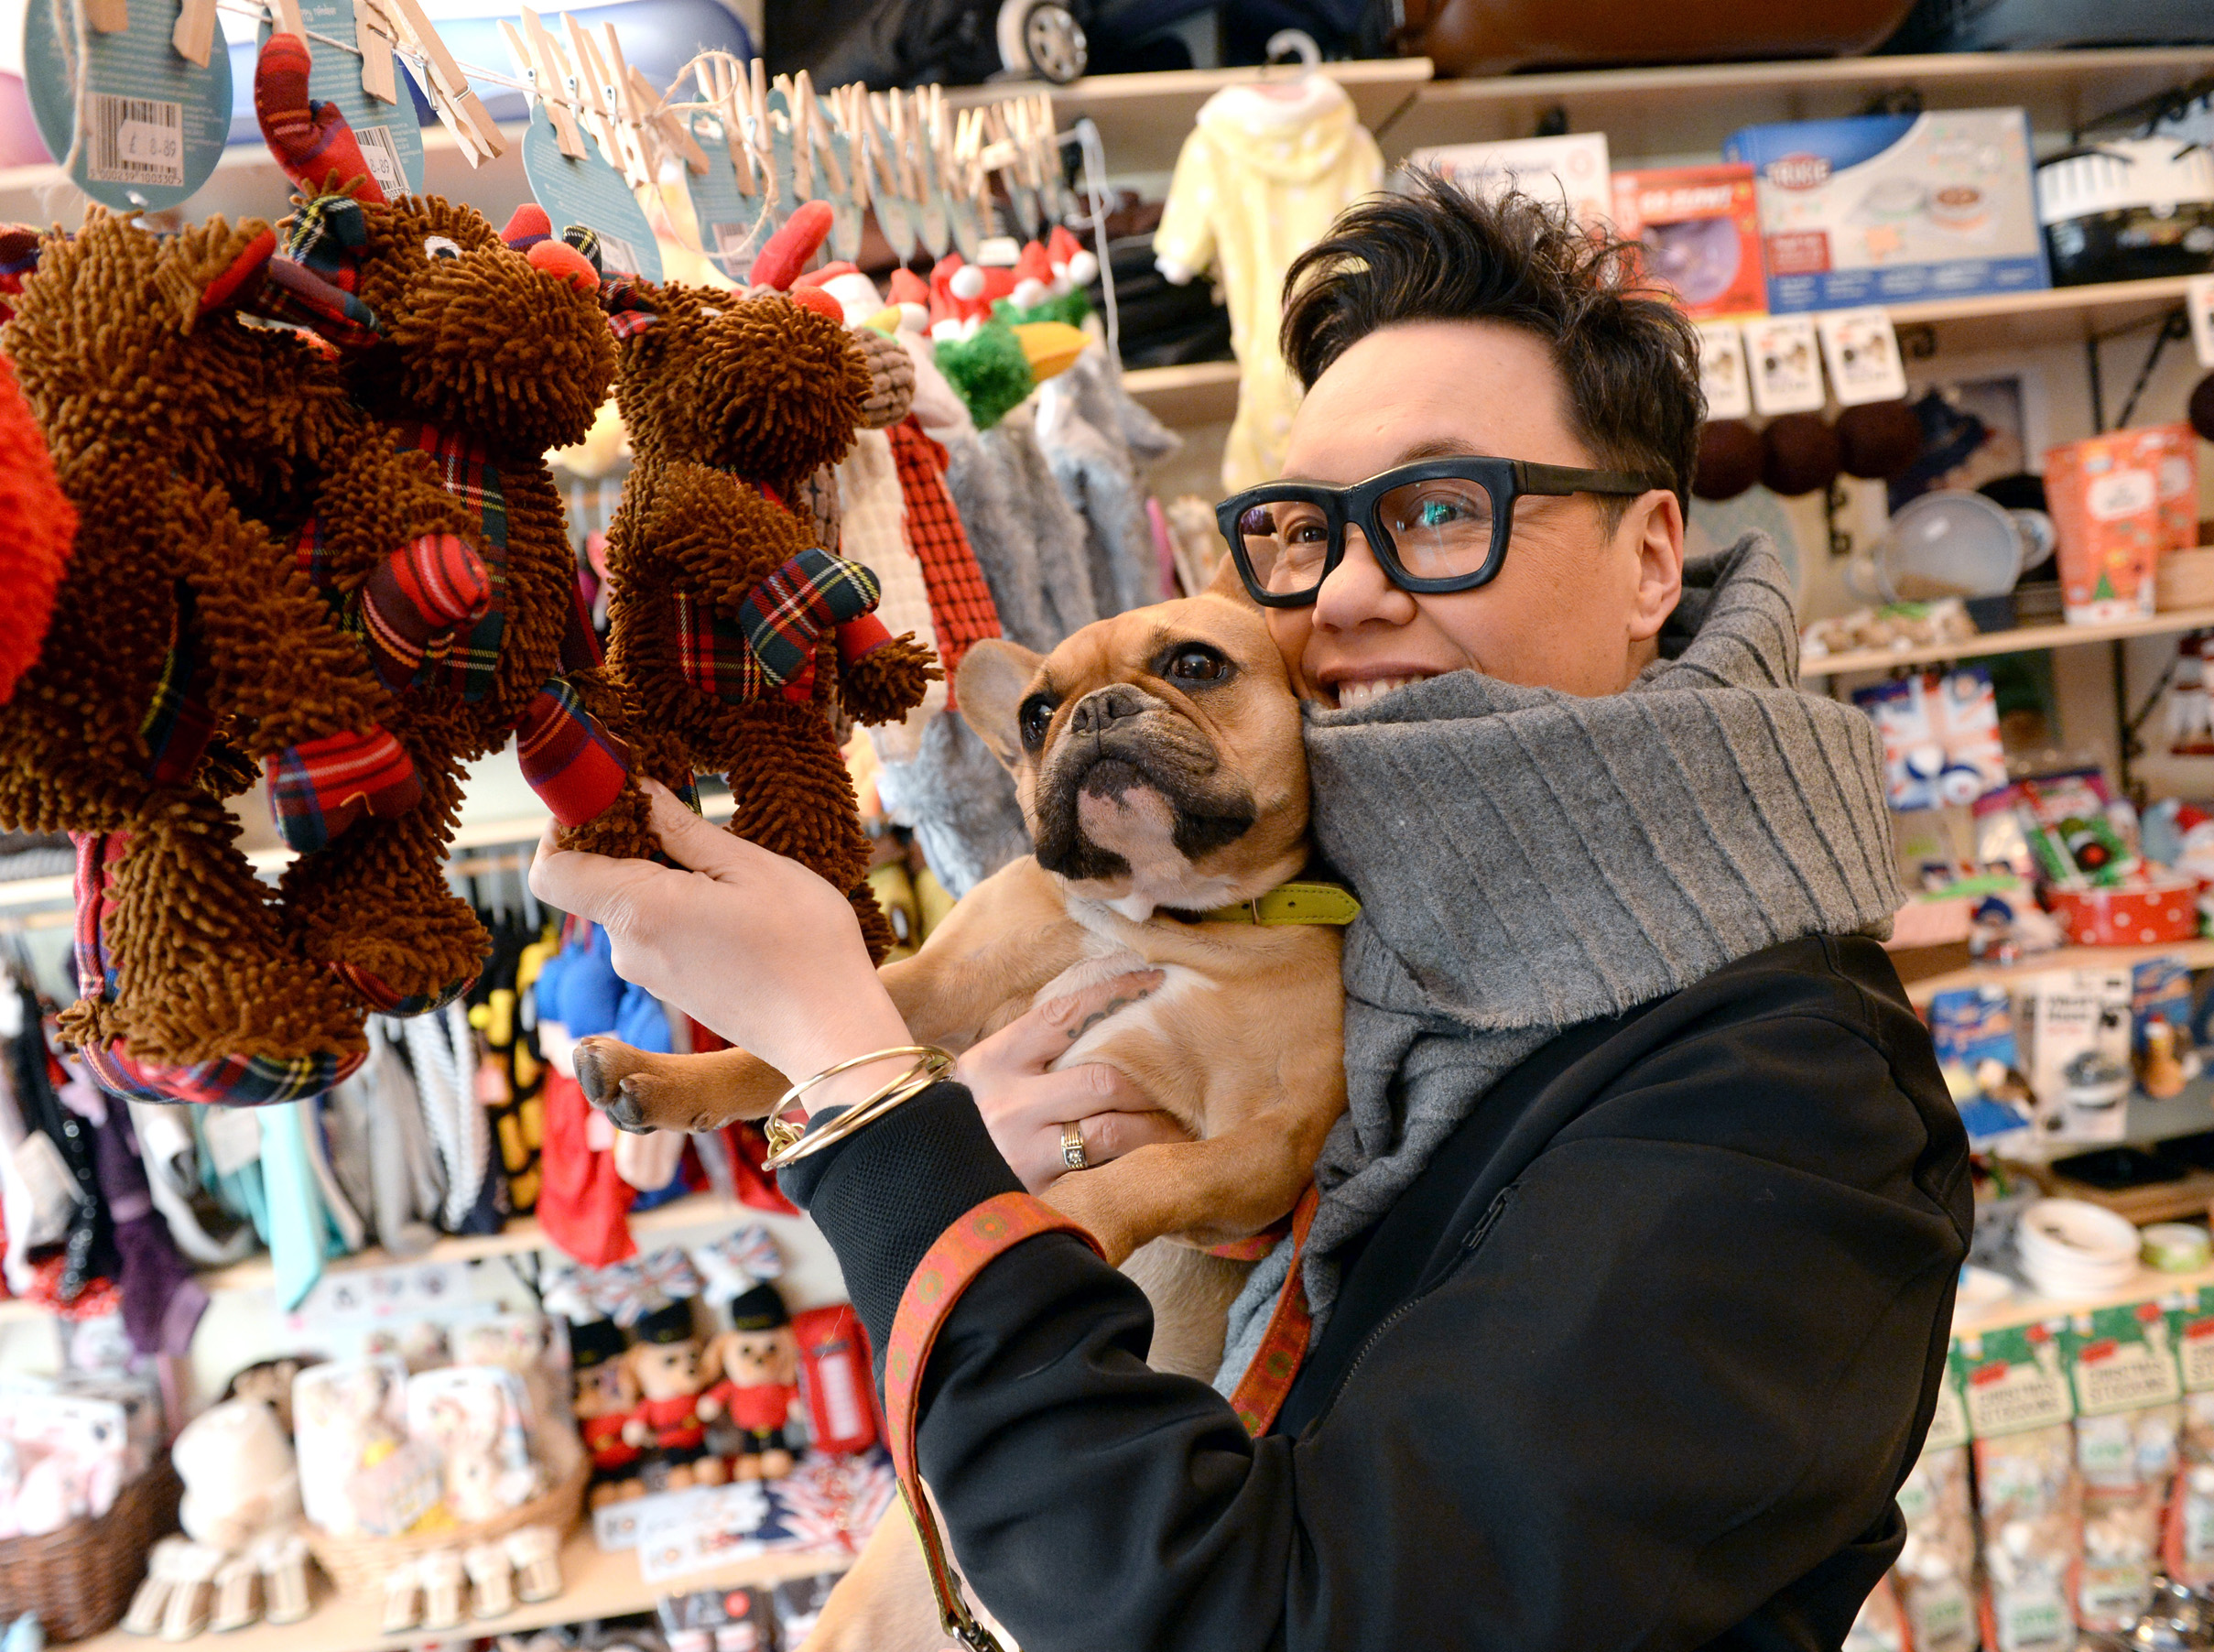 Gok Wan, who's teamed up with American Express to uncover hidden gems and local small businesses. (Doug Peters/PA)